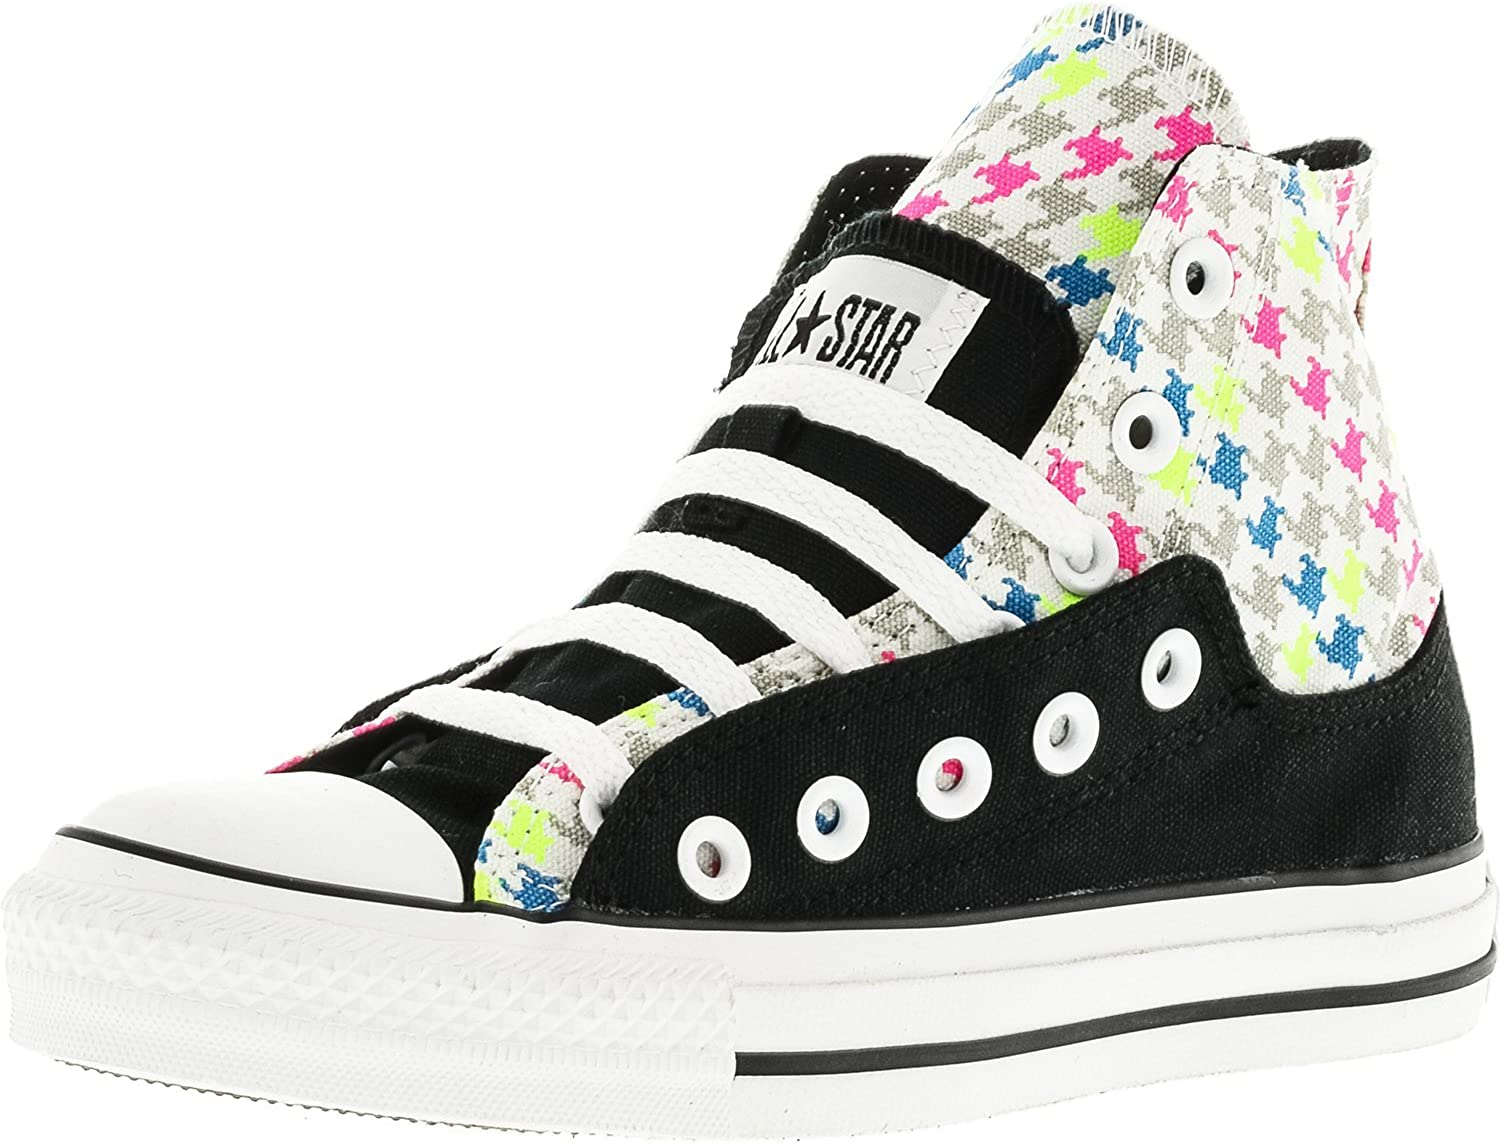 Converse Chuck Taylor Layer up Hi Ankle-High Canvas Fashion Sneaker